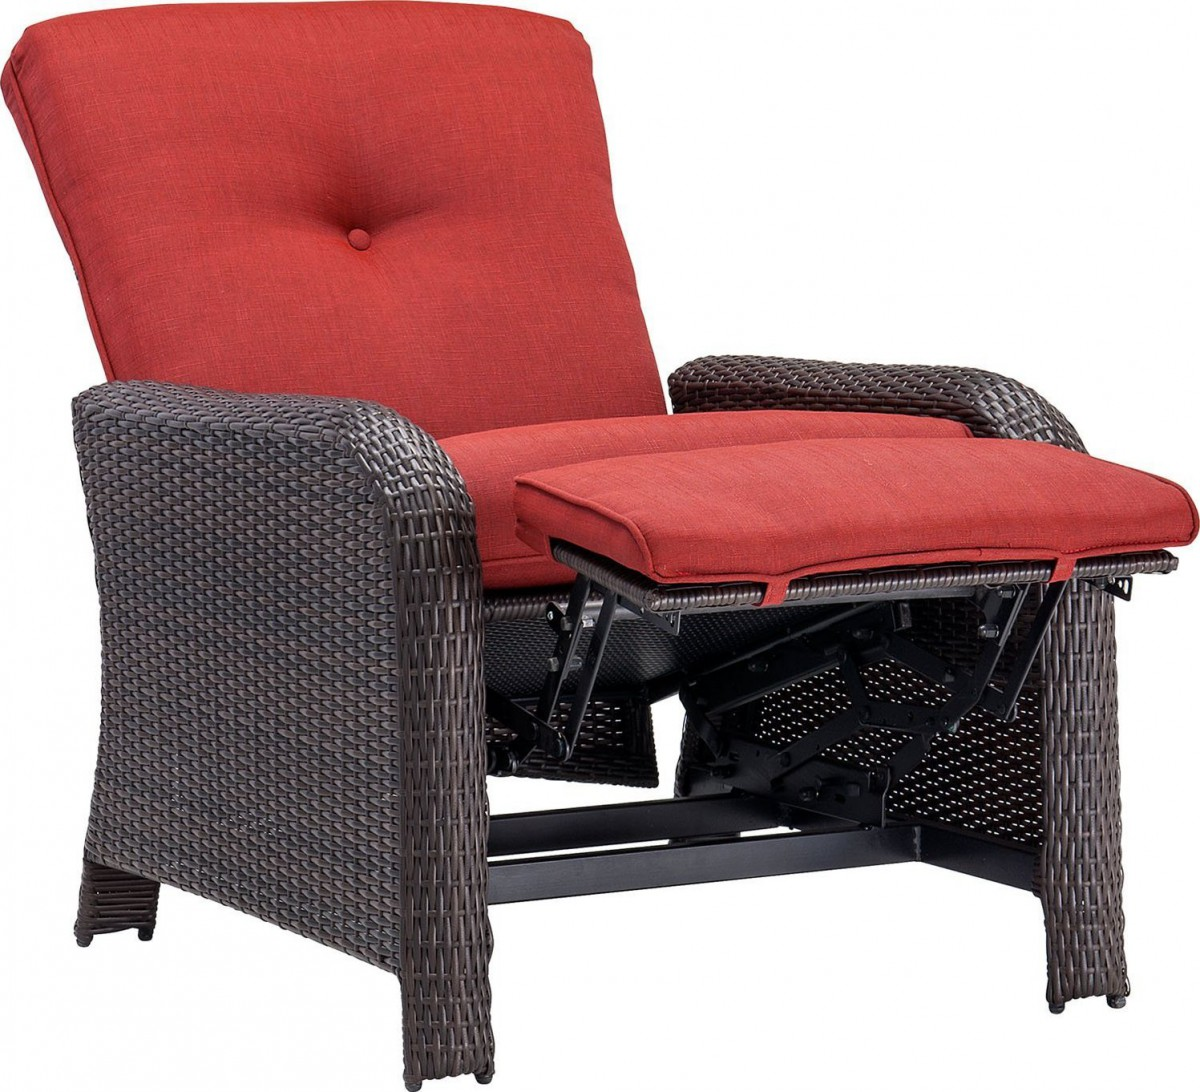 amazon club chair covers medical waiting room chairs hanover strathmere luxury wicker outdoor recliner